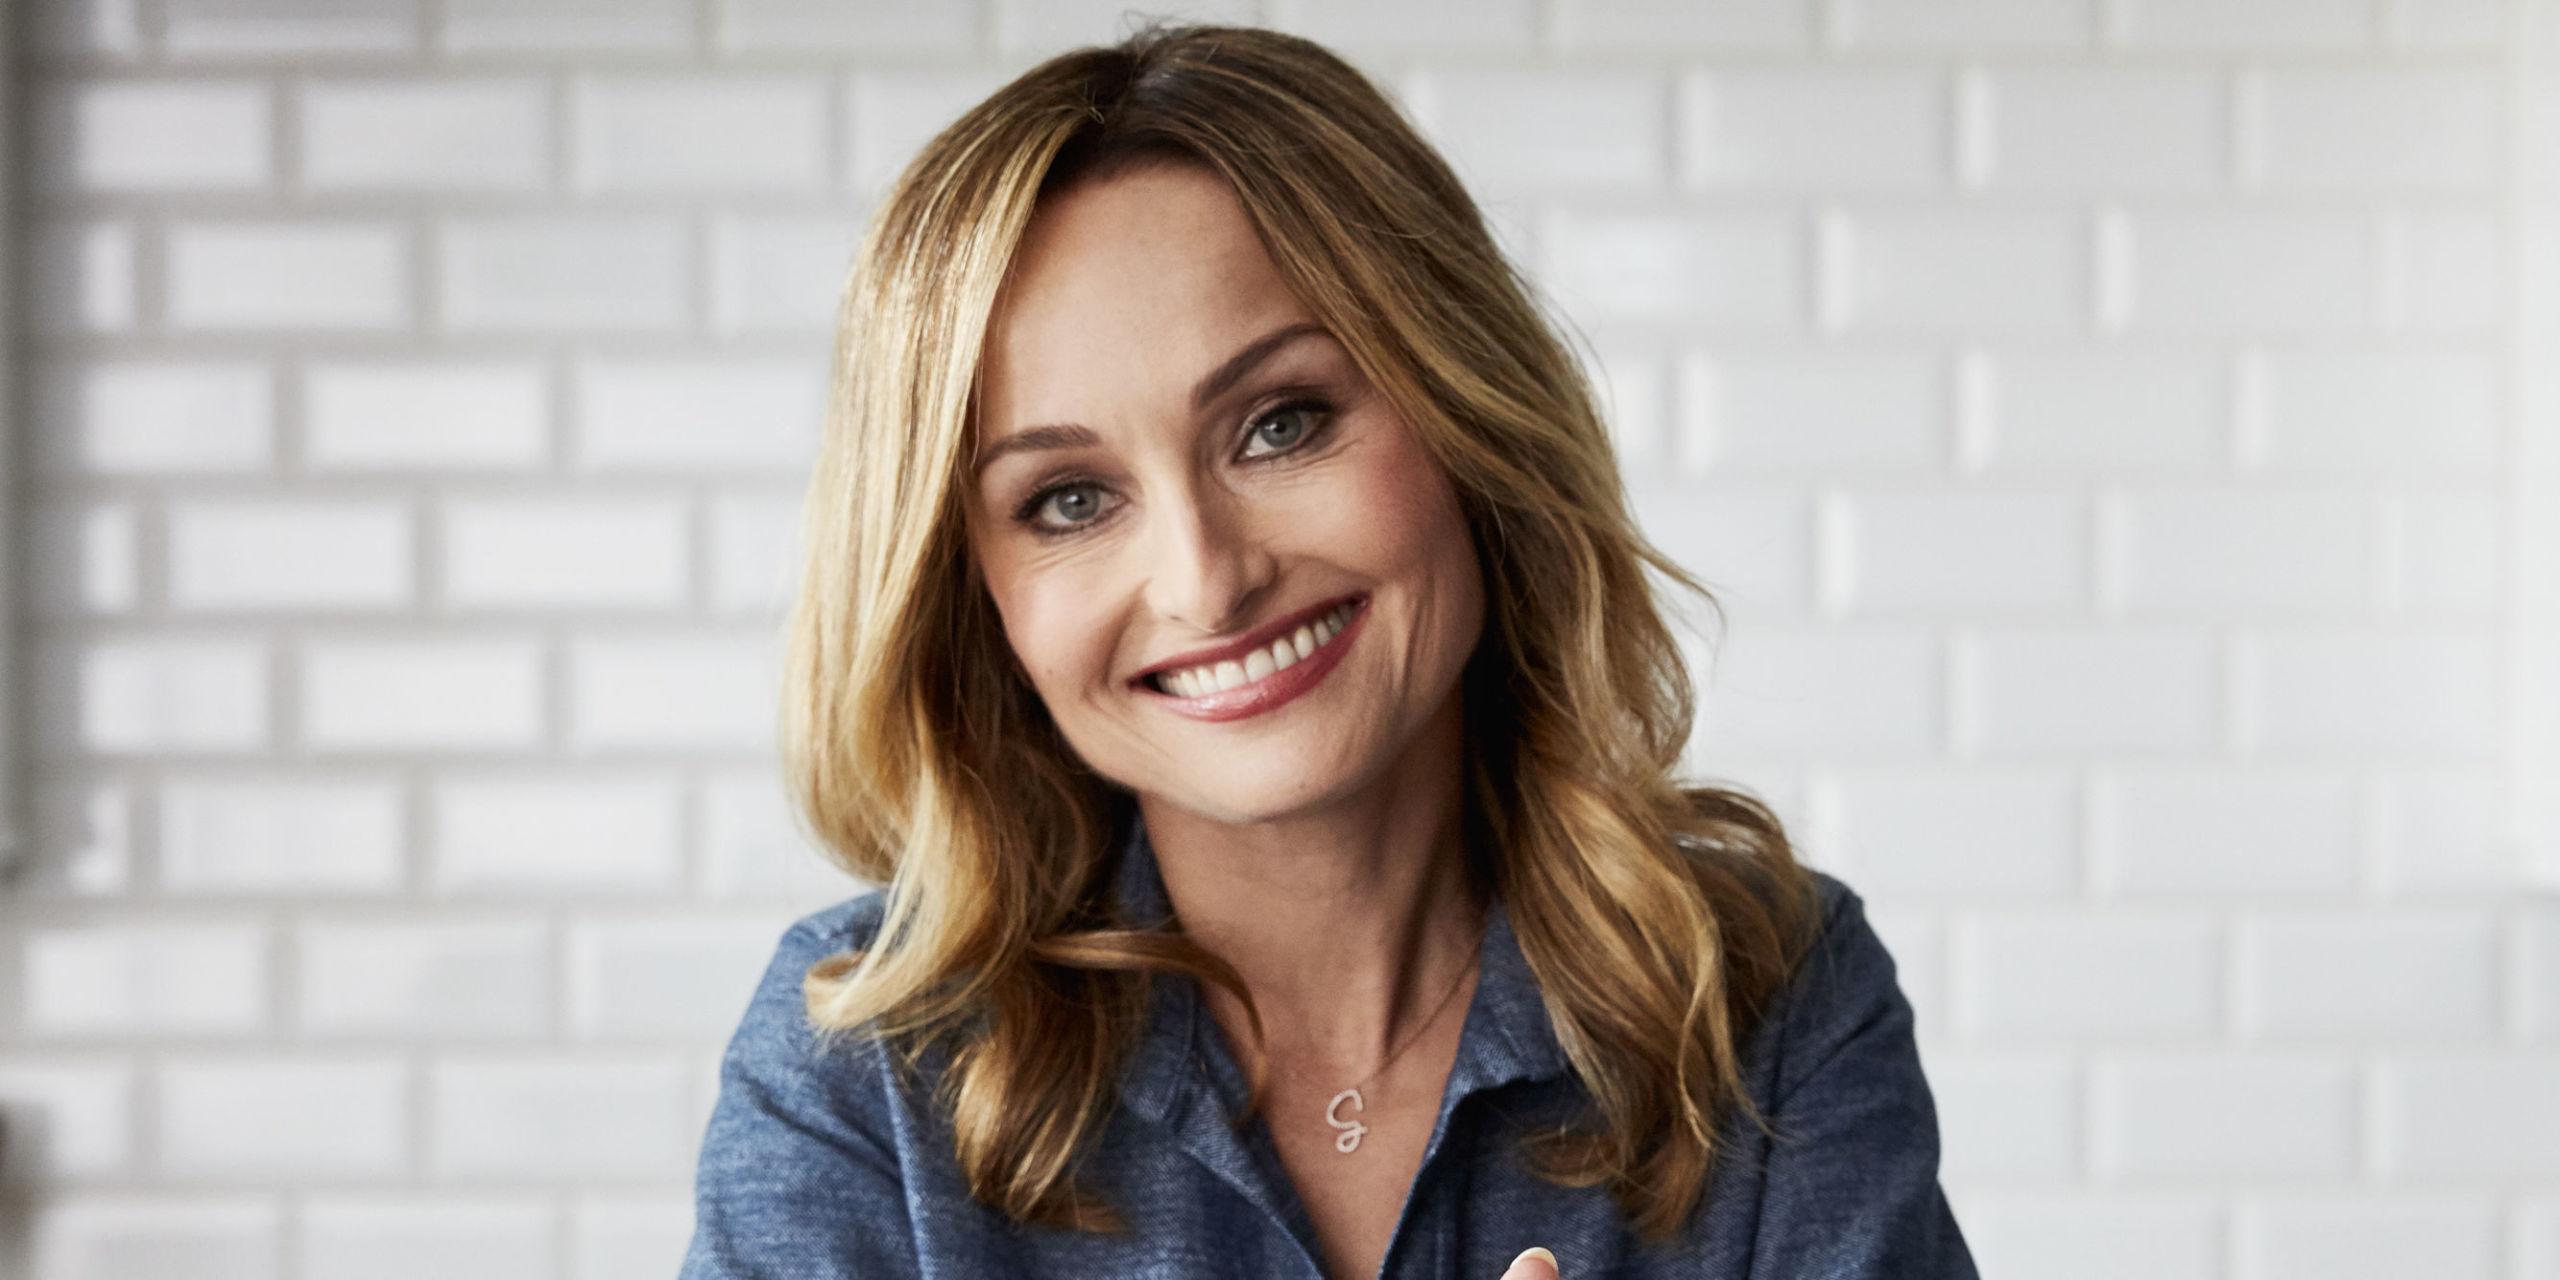 The Surprising Breakfast That Keeps Giada De Laurentiis Looking So Fit